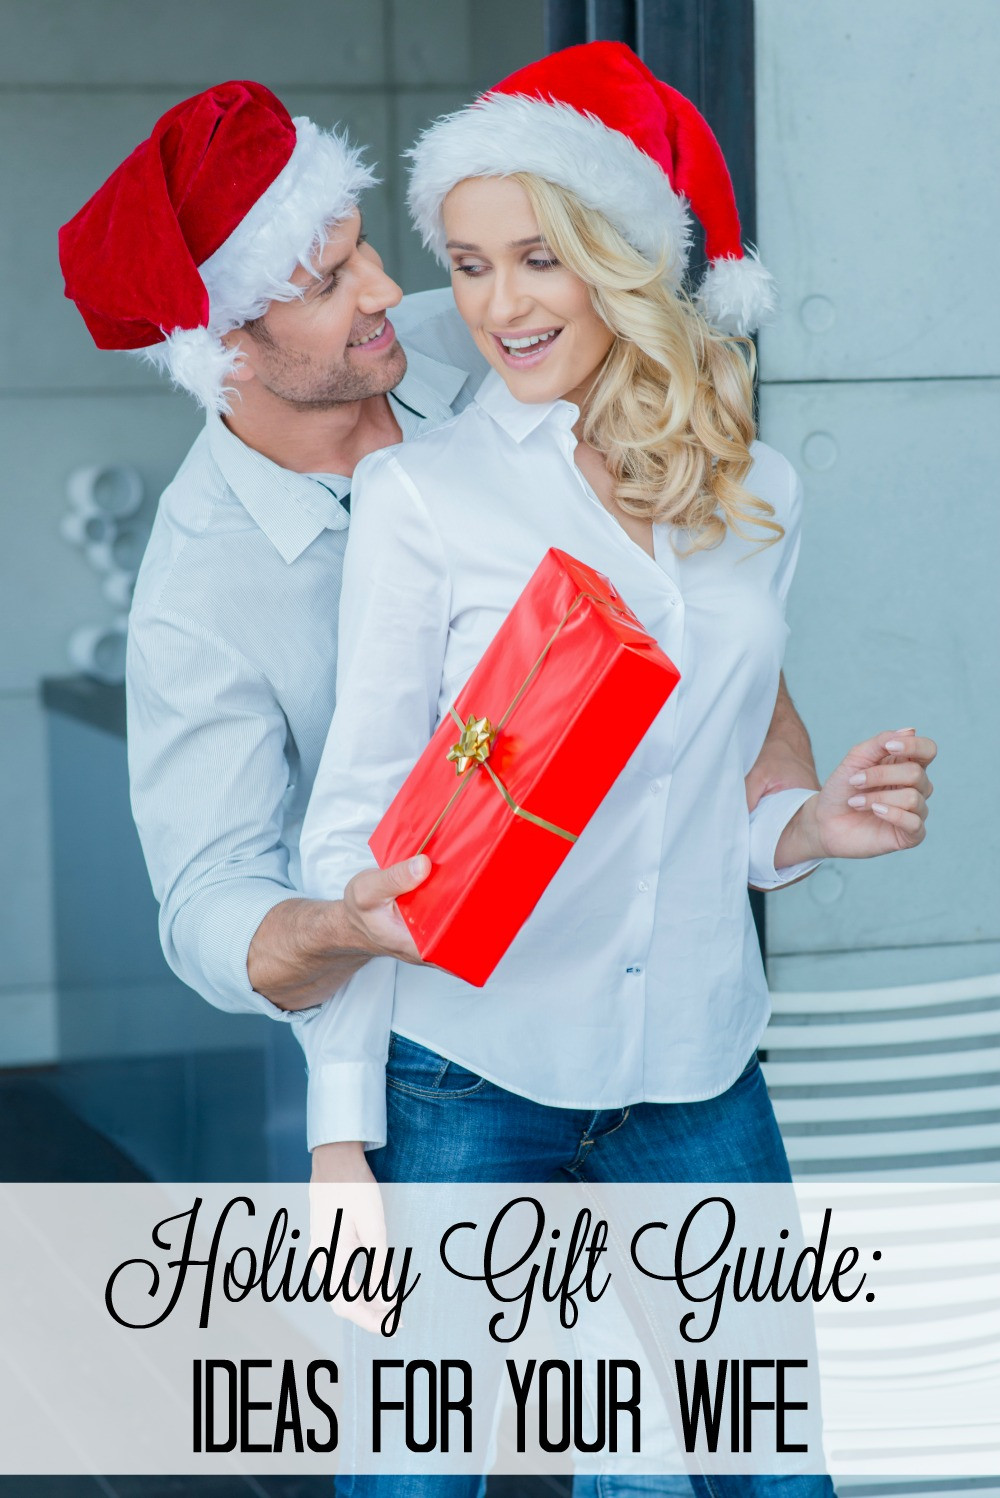 Best ideas about Holiday Gift Ideas For Wife . Save or Pin Holiday Gift Guide Ideas for the Wife Now.